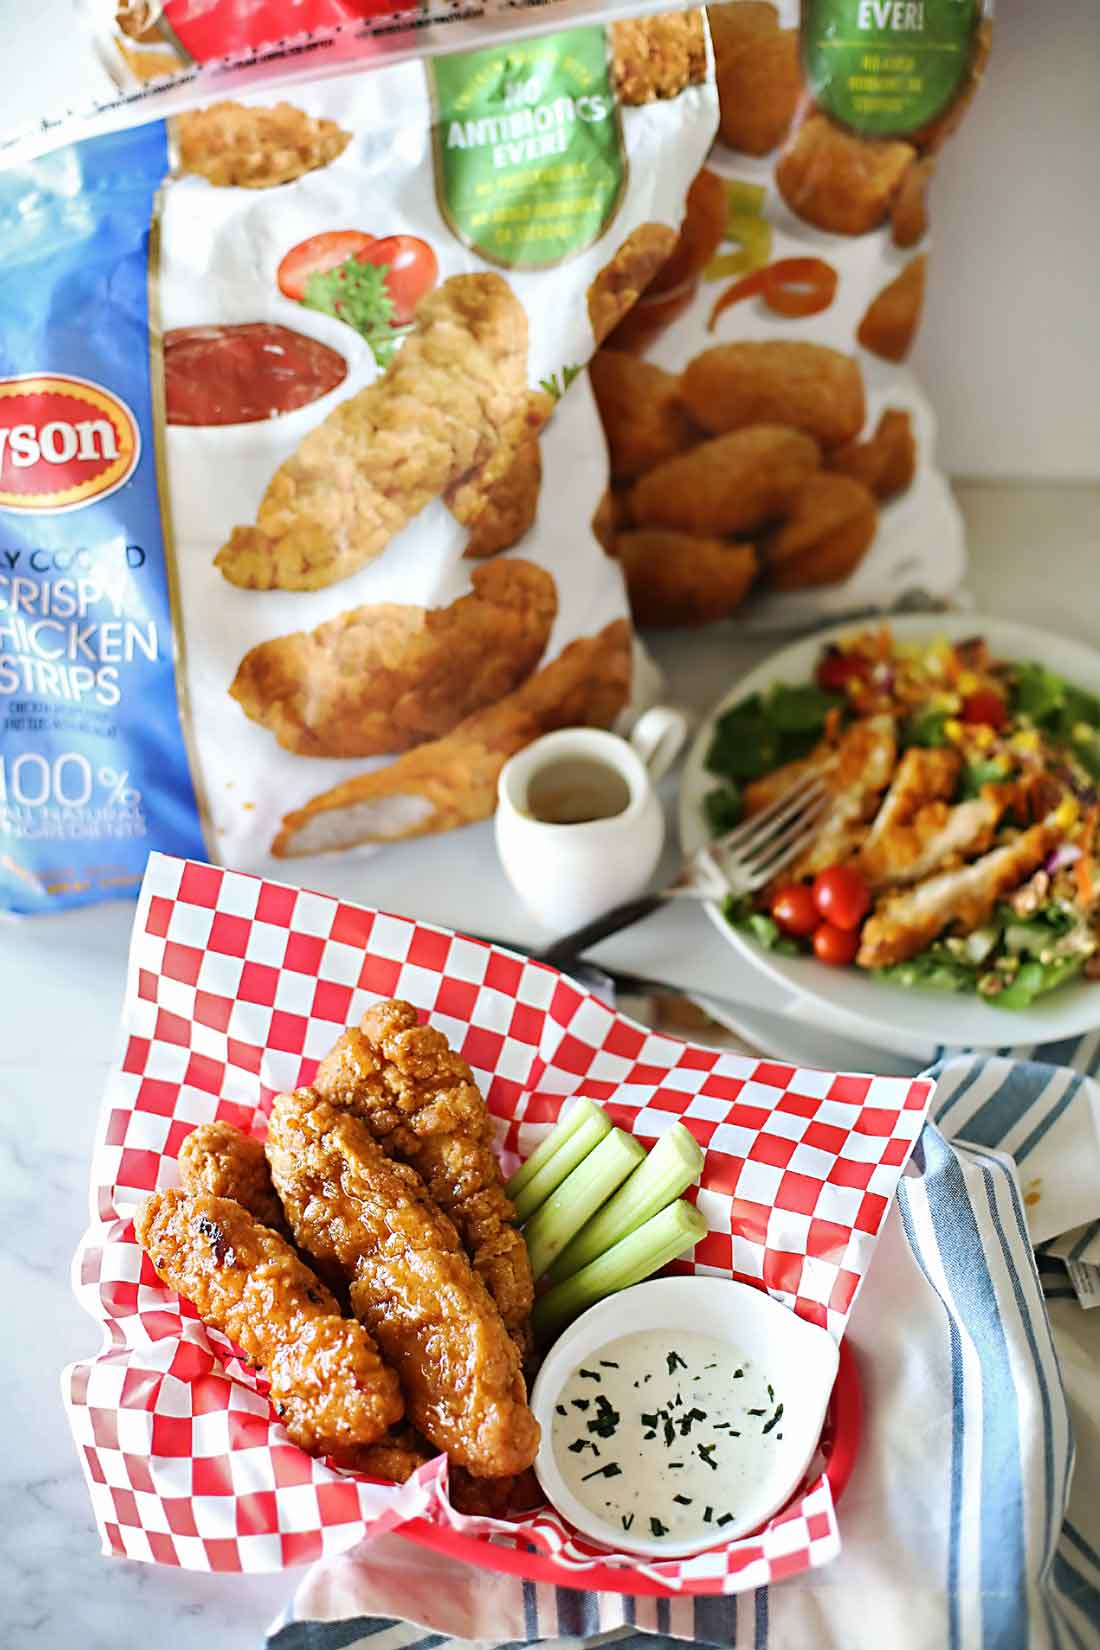 Asian Chili Sweet Heat Sticky Fingers recipe by Flirtign with Flavor with Tyson foods no antibiotics ever Crispy Chicken Strips